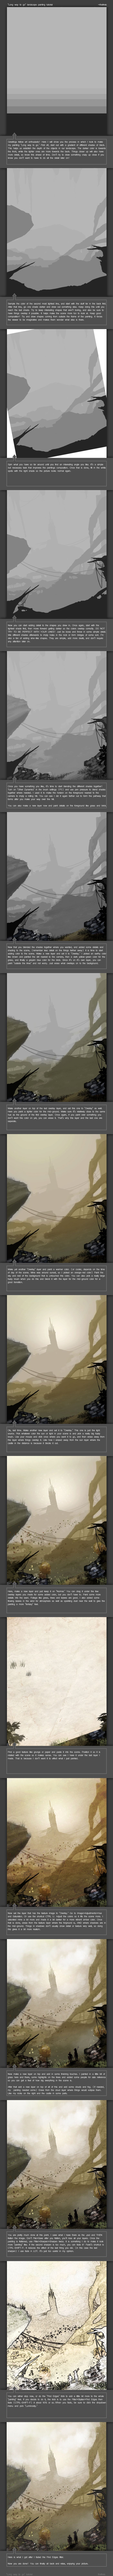 Environment Painting Tutorial by thefireis on DeviantArt